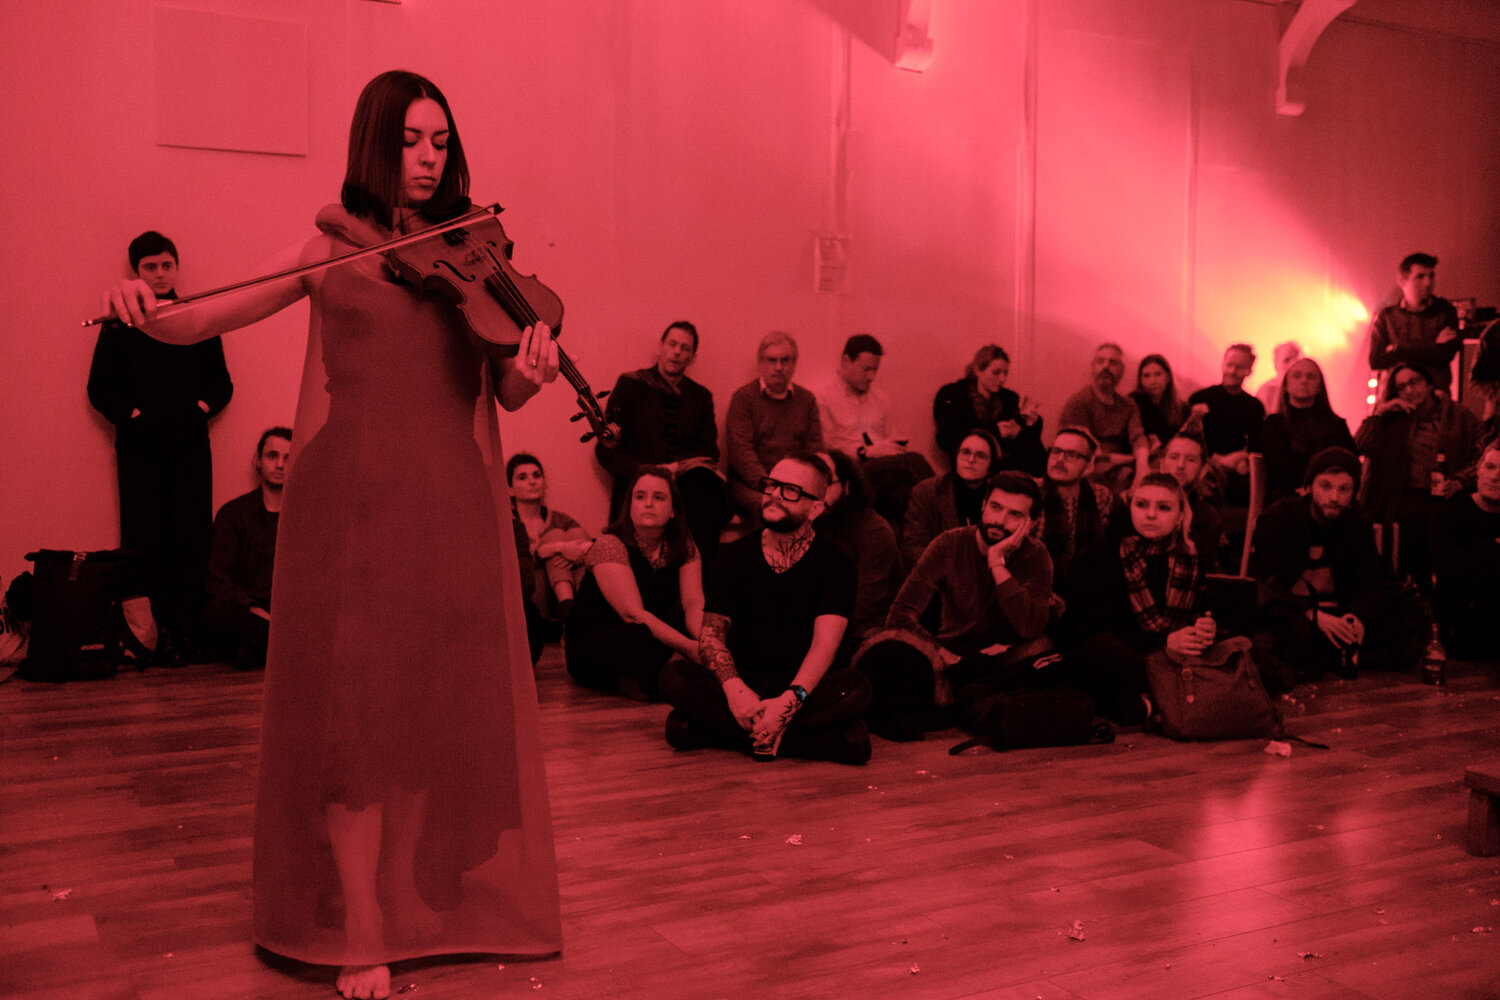 Associate Composer 19-20 Lola de la Mata performing at her curated Nonclassical event The Gaze. Photo by Dmitri Djuric.